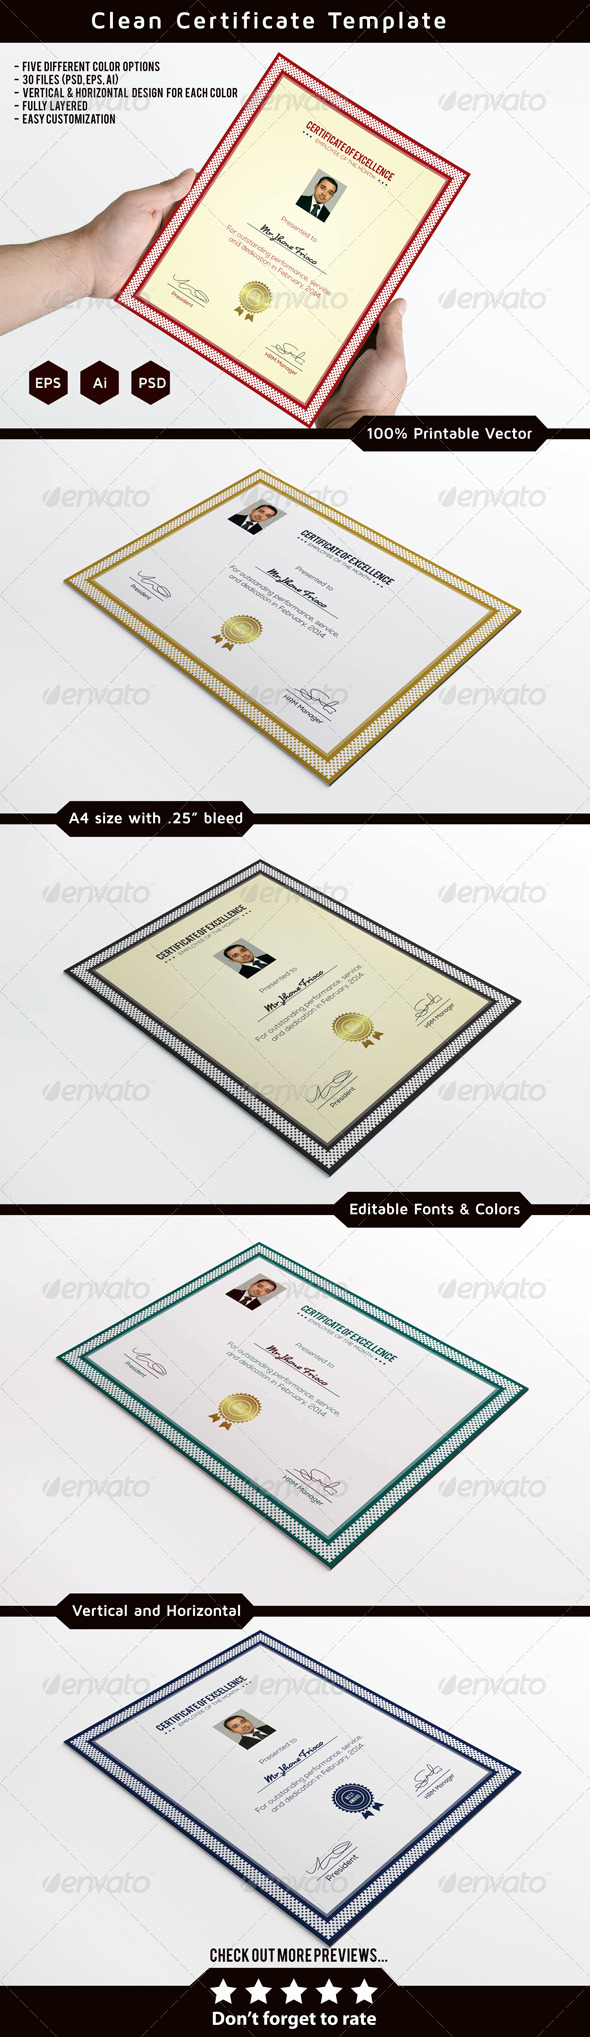 Clean Certificate Template